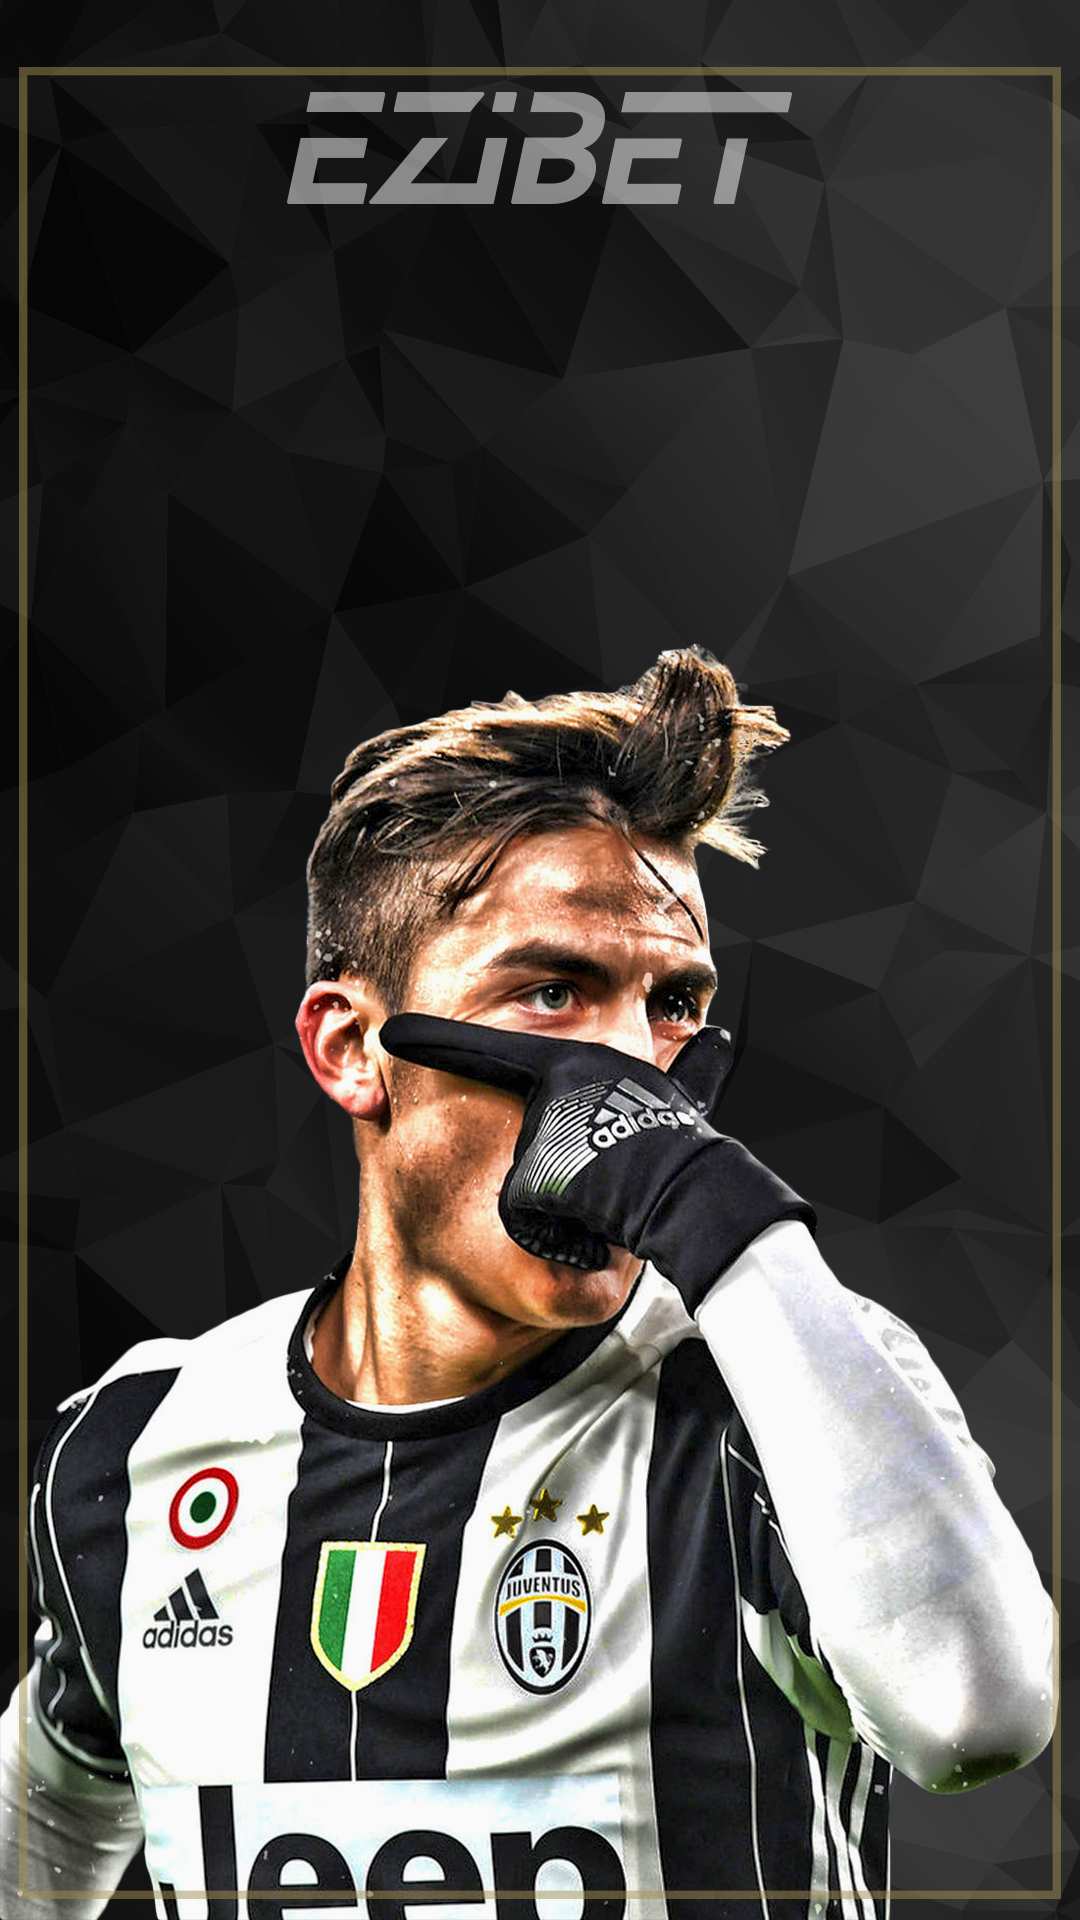 Dybala Mobile wallpaper.jpg